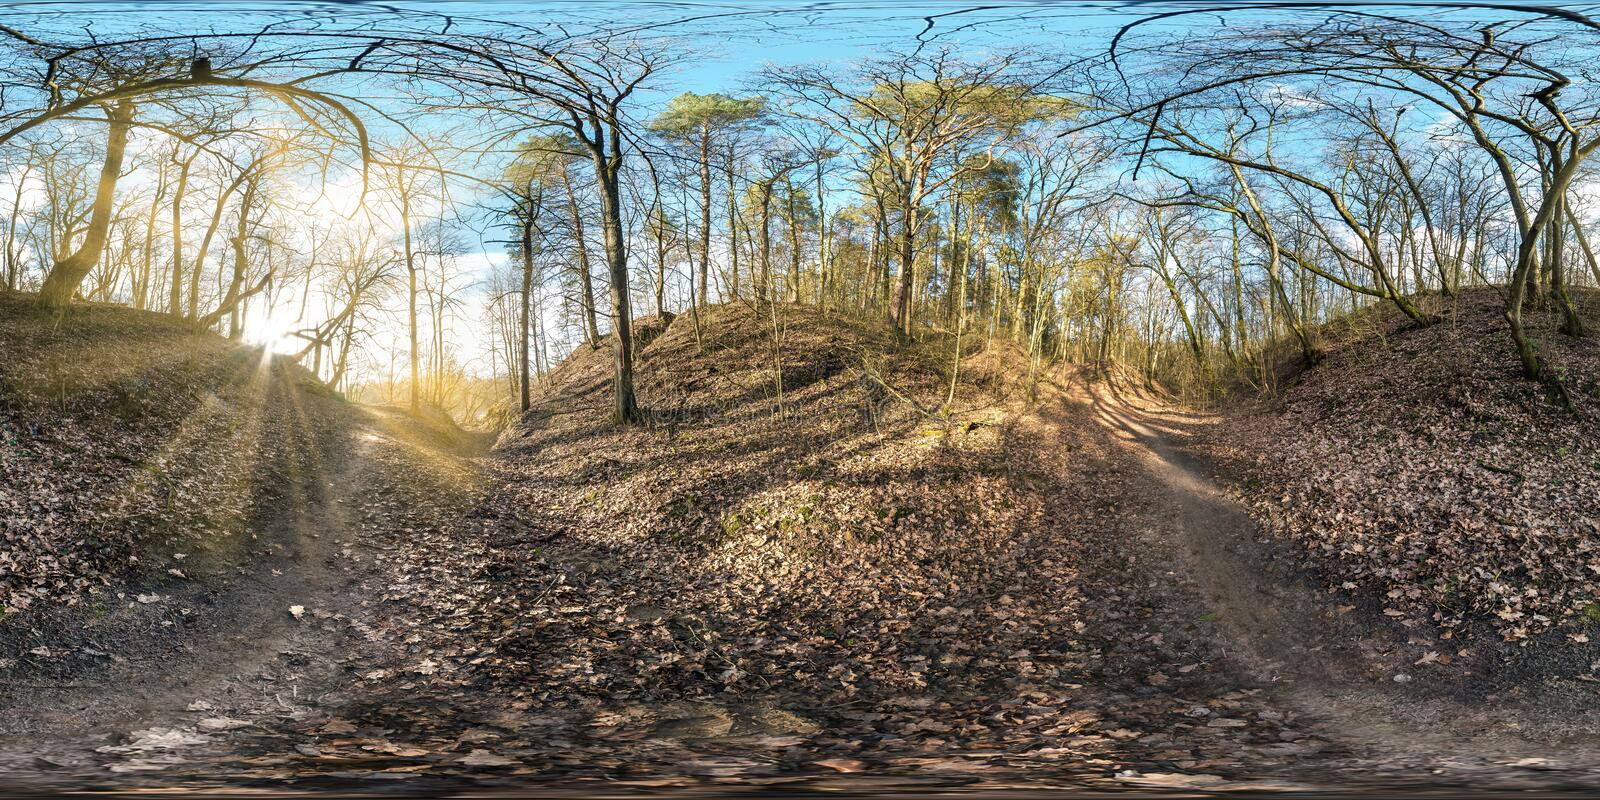 Full seamless spherical panorama 360 degrees angle view in tree-covered ravine in forest with sun rays equirectangular projection royalty free stock photography